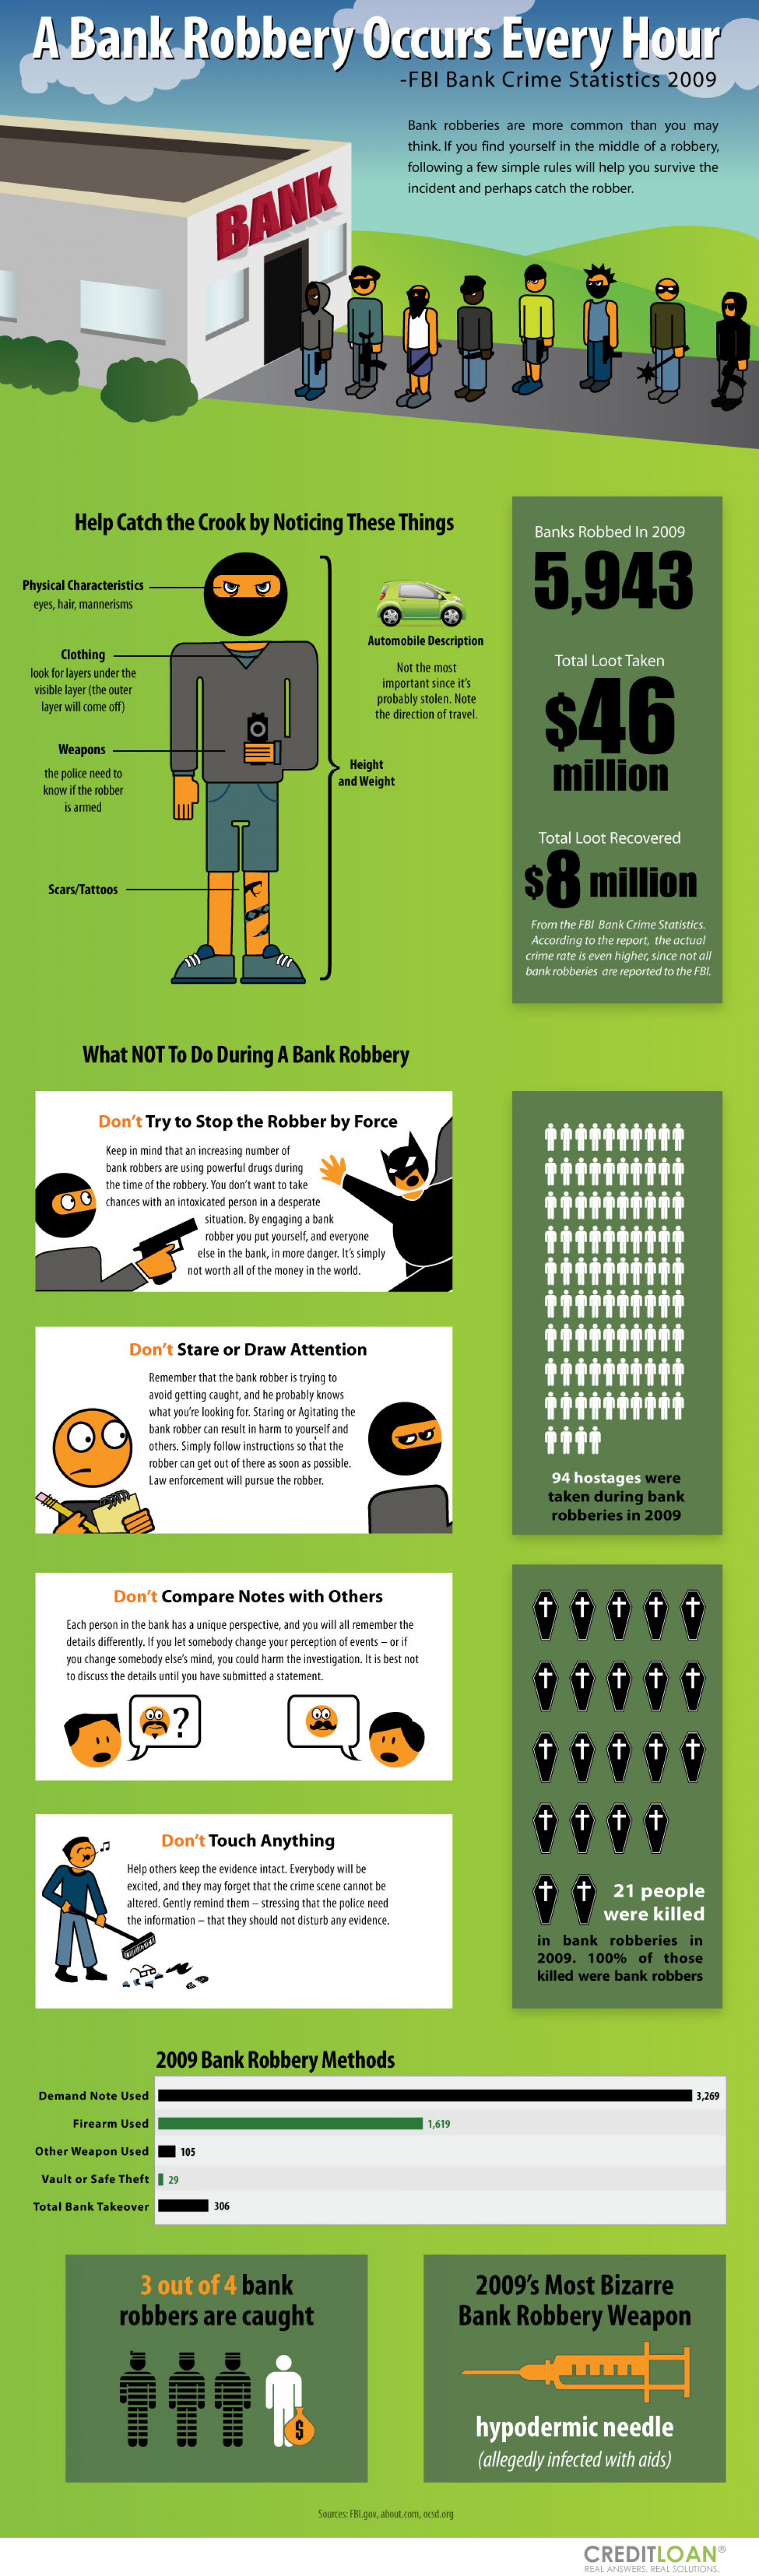 A Bank Robbery Occurs Every Hour Infographic